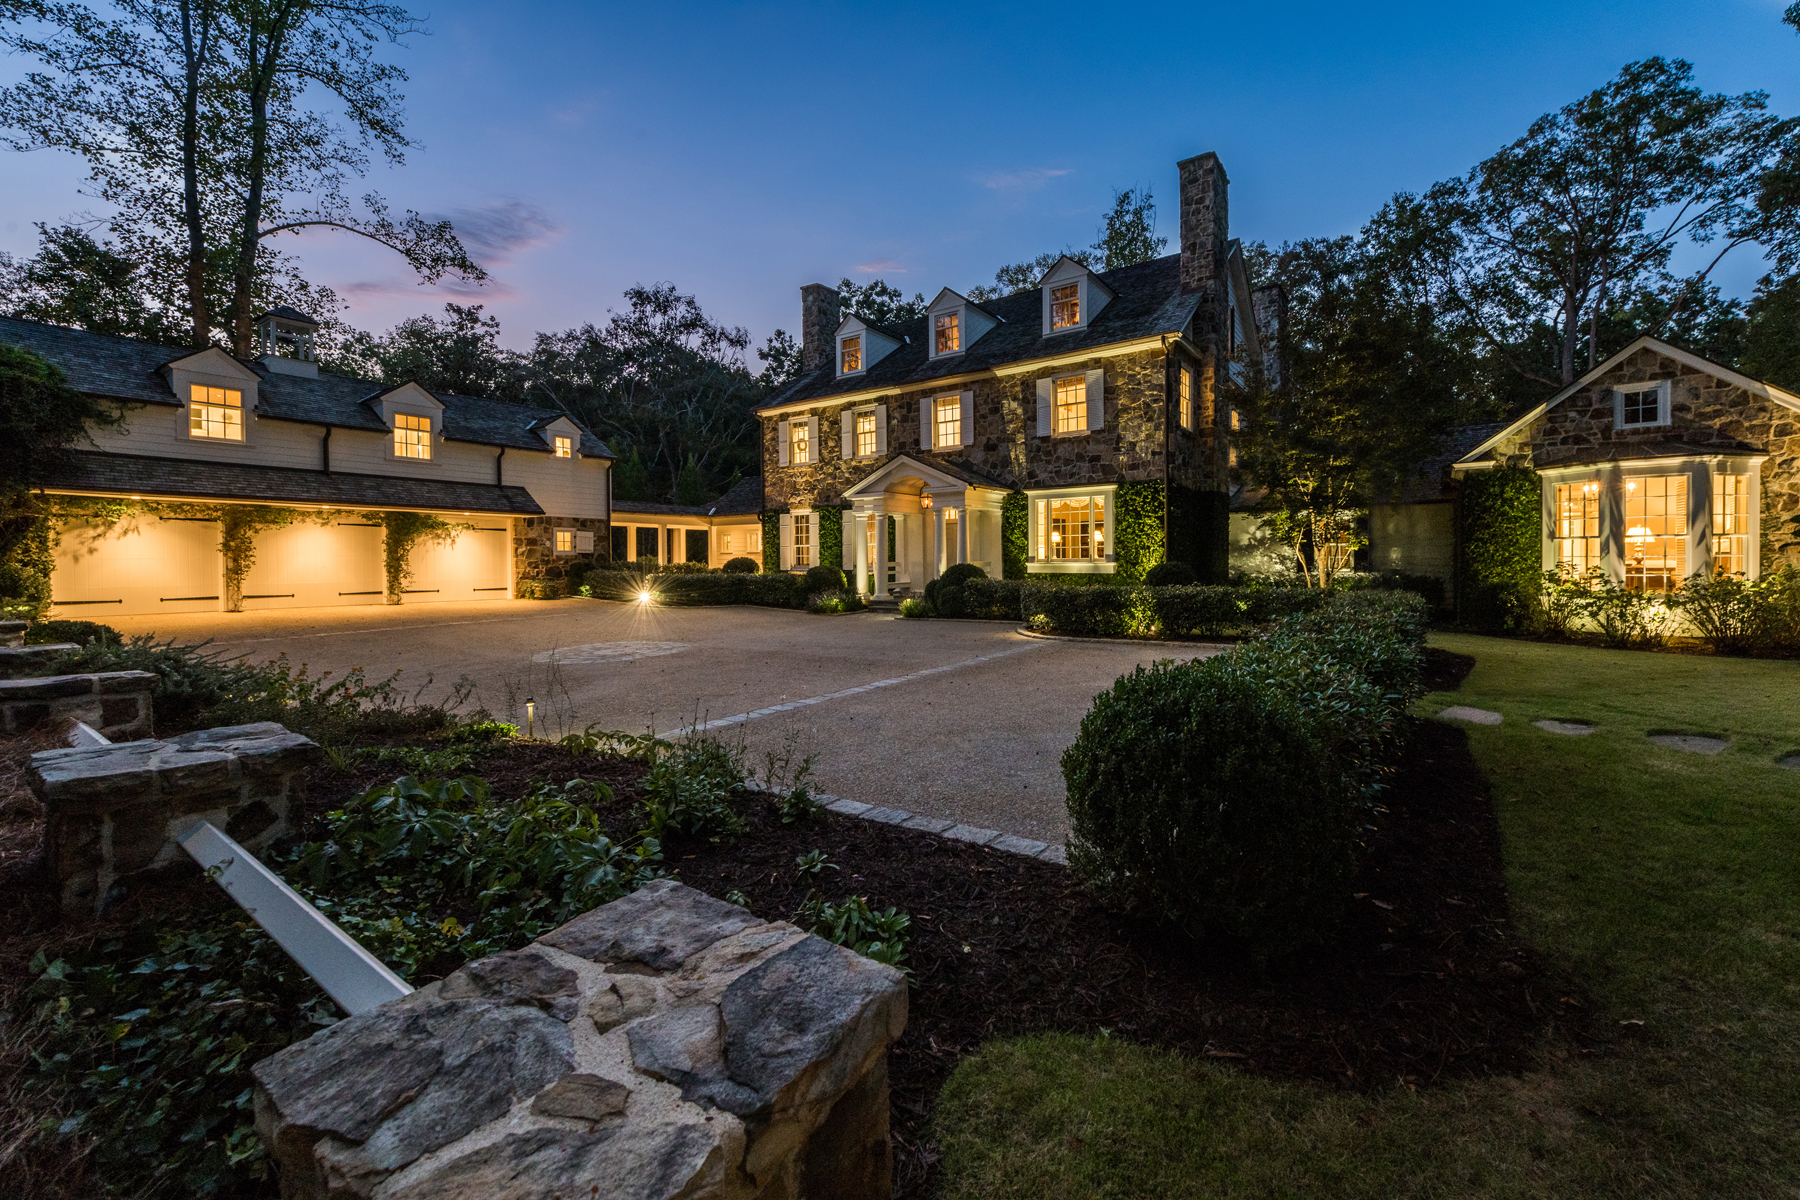 獨棟家庭住宅 為 出售 在 Stunning Estate On Private 2.3+/- Acres 1035 Nawench Drive NW Atlanta, 喬治亞州 30327 美國